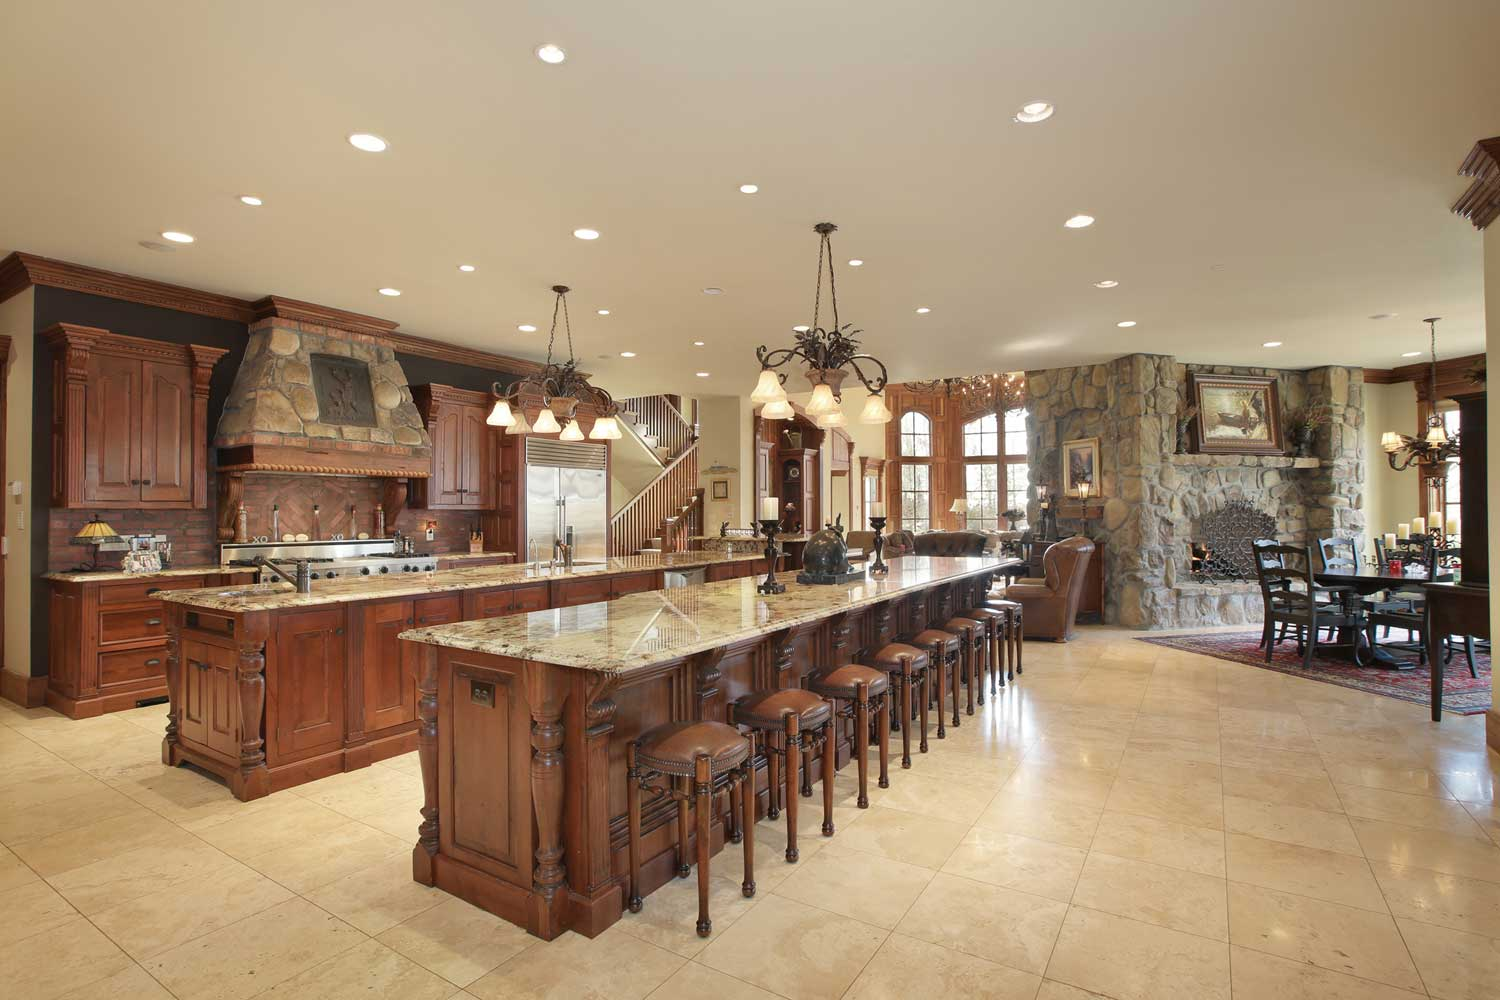 <b>Duluth, Georgia</b><br/><i>8 Bedrooms, 22,596 sq. ft.</i><br/>Eight-bedroom estate on the 18th fairway